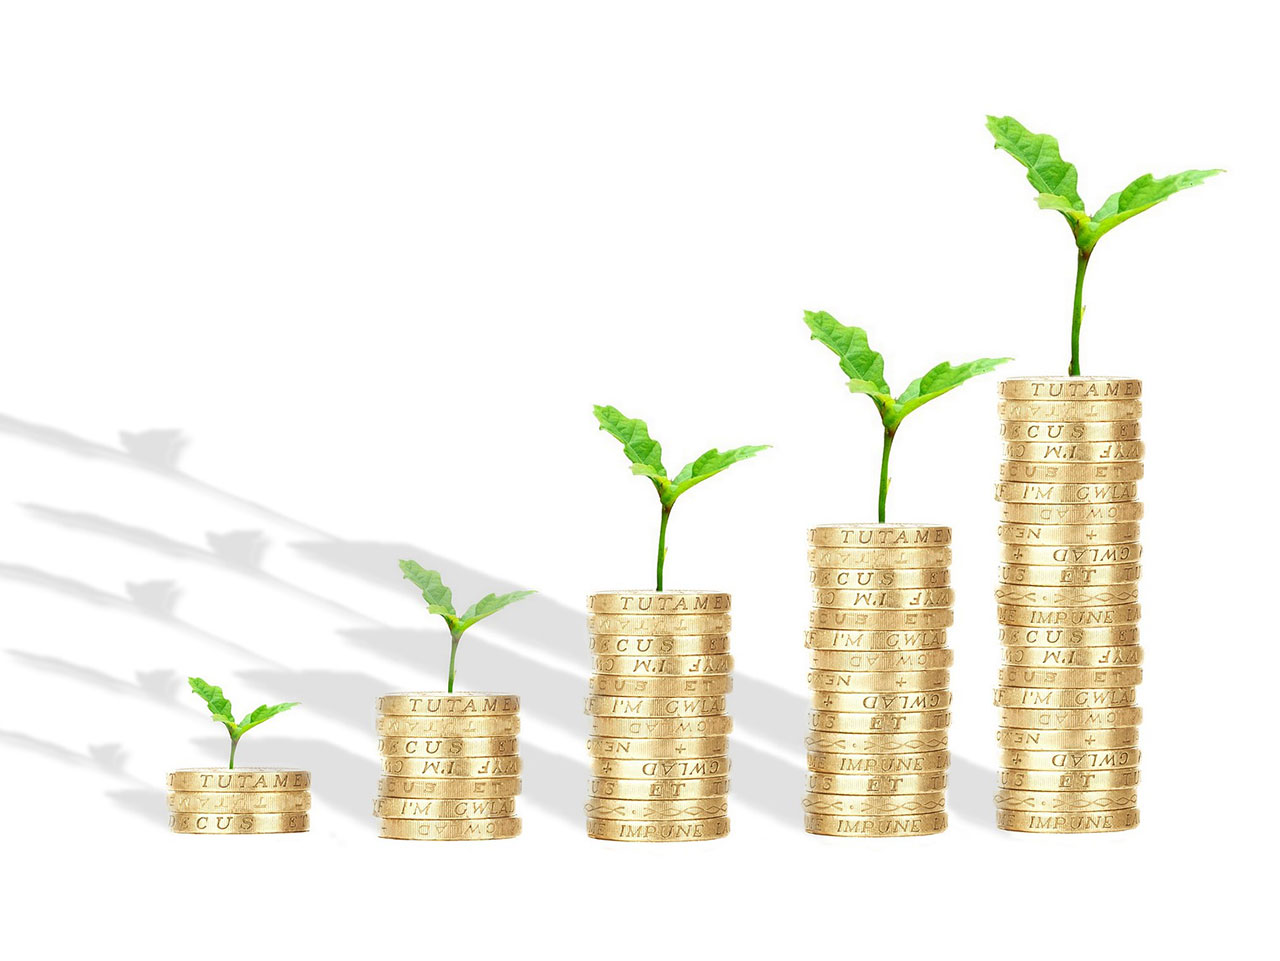 equity release - coins stacked with saplings growing on top